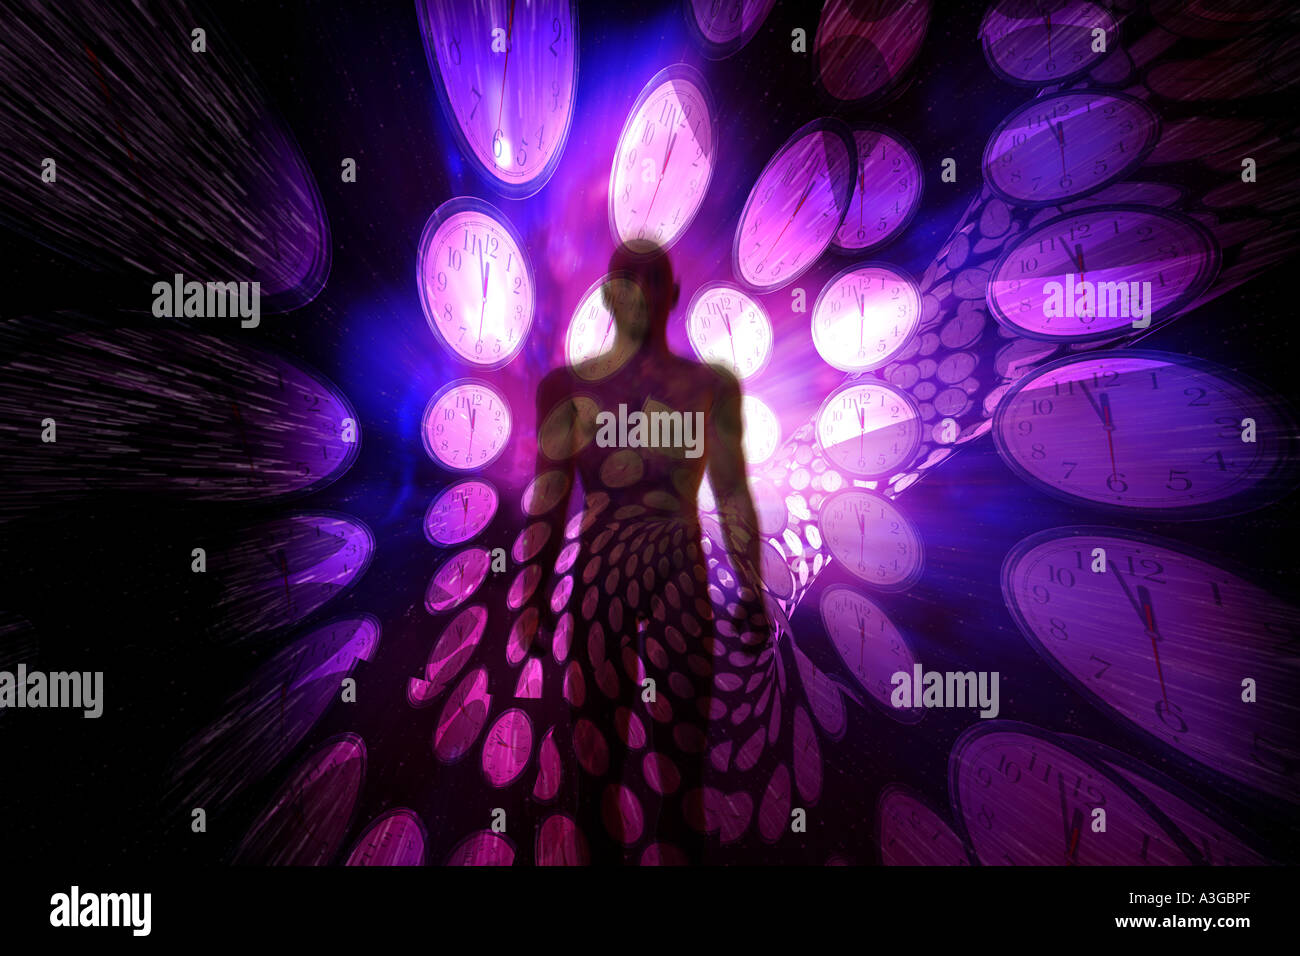 A traveller in the fourth dimension. - Stock Image